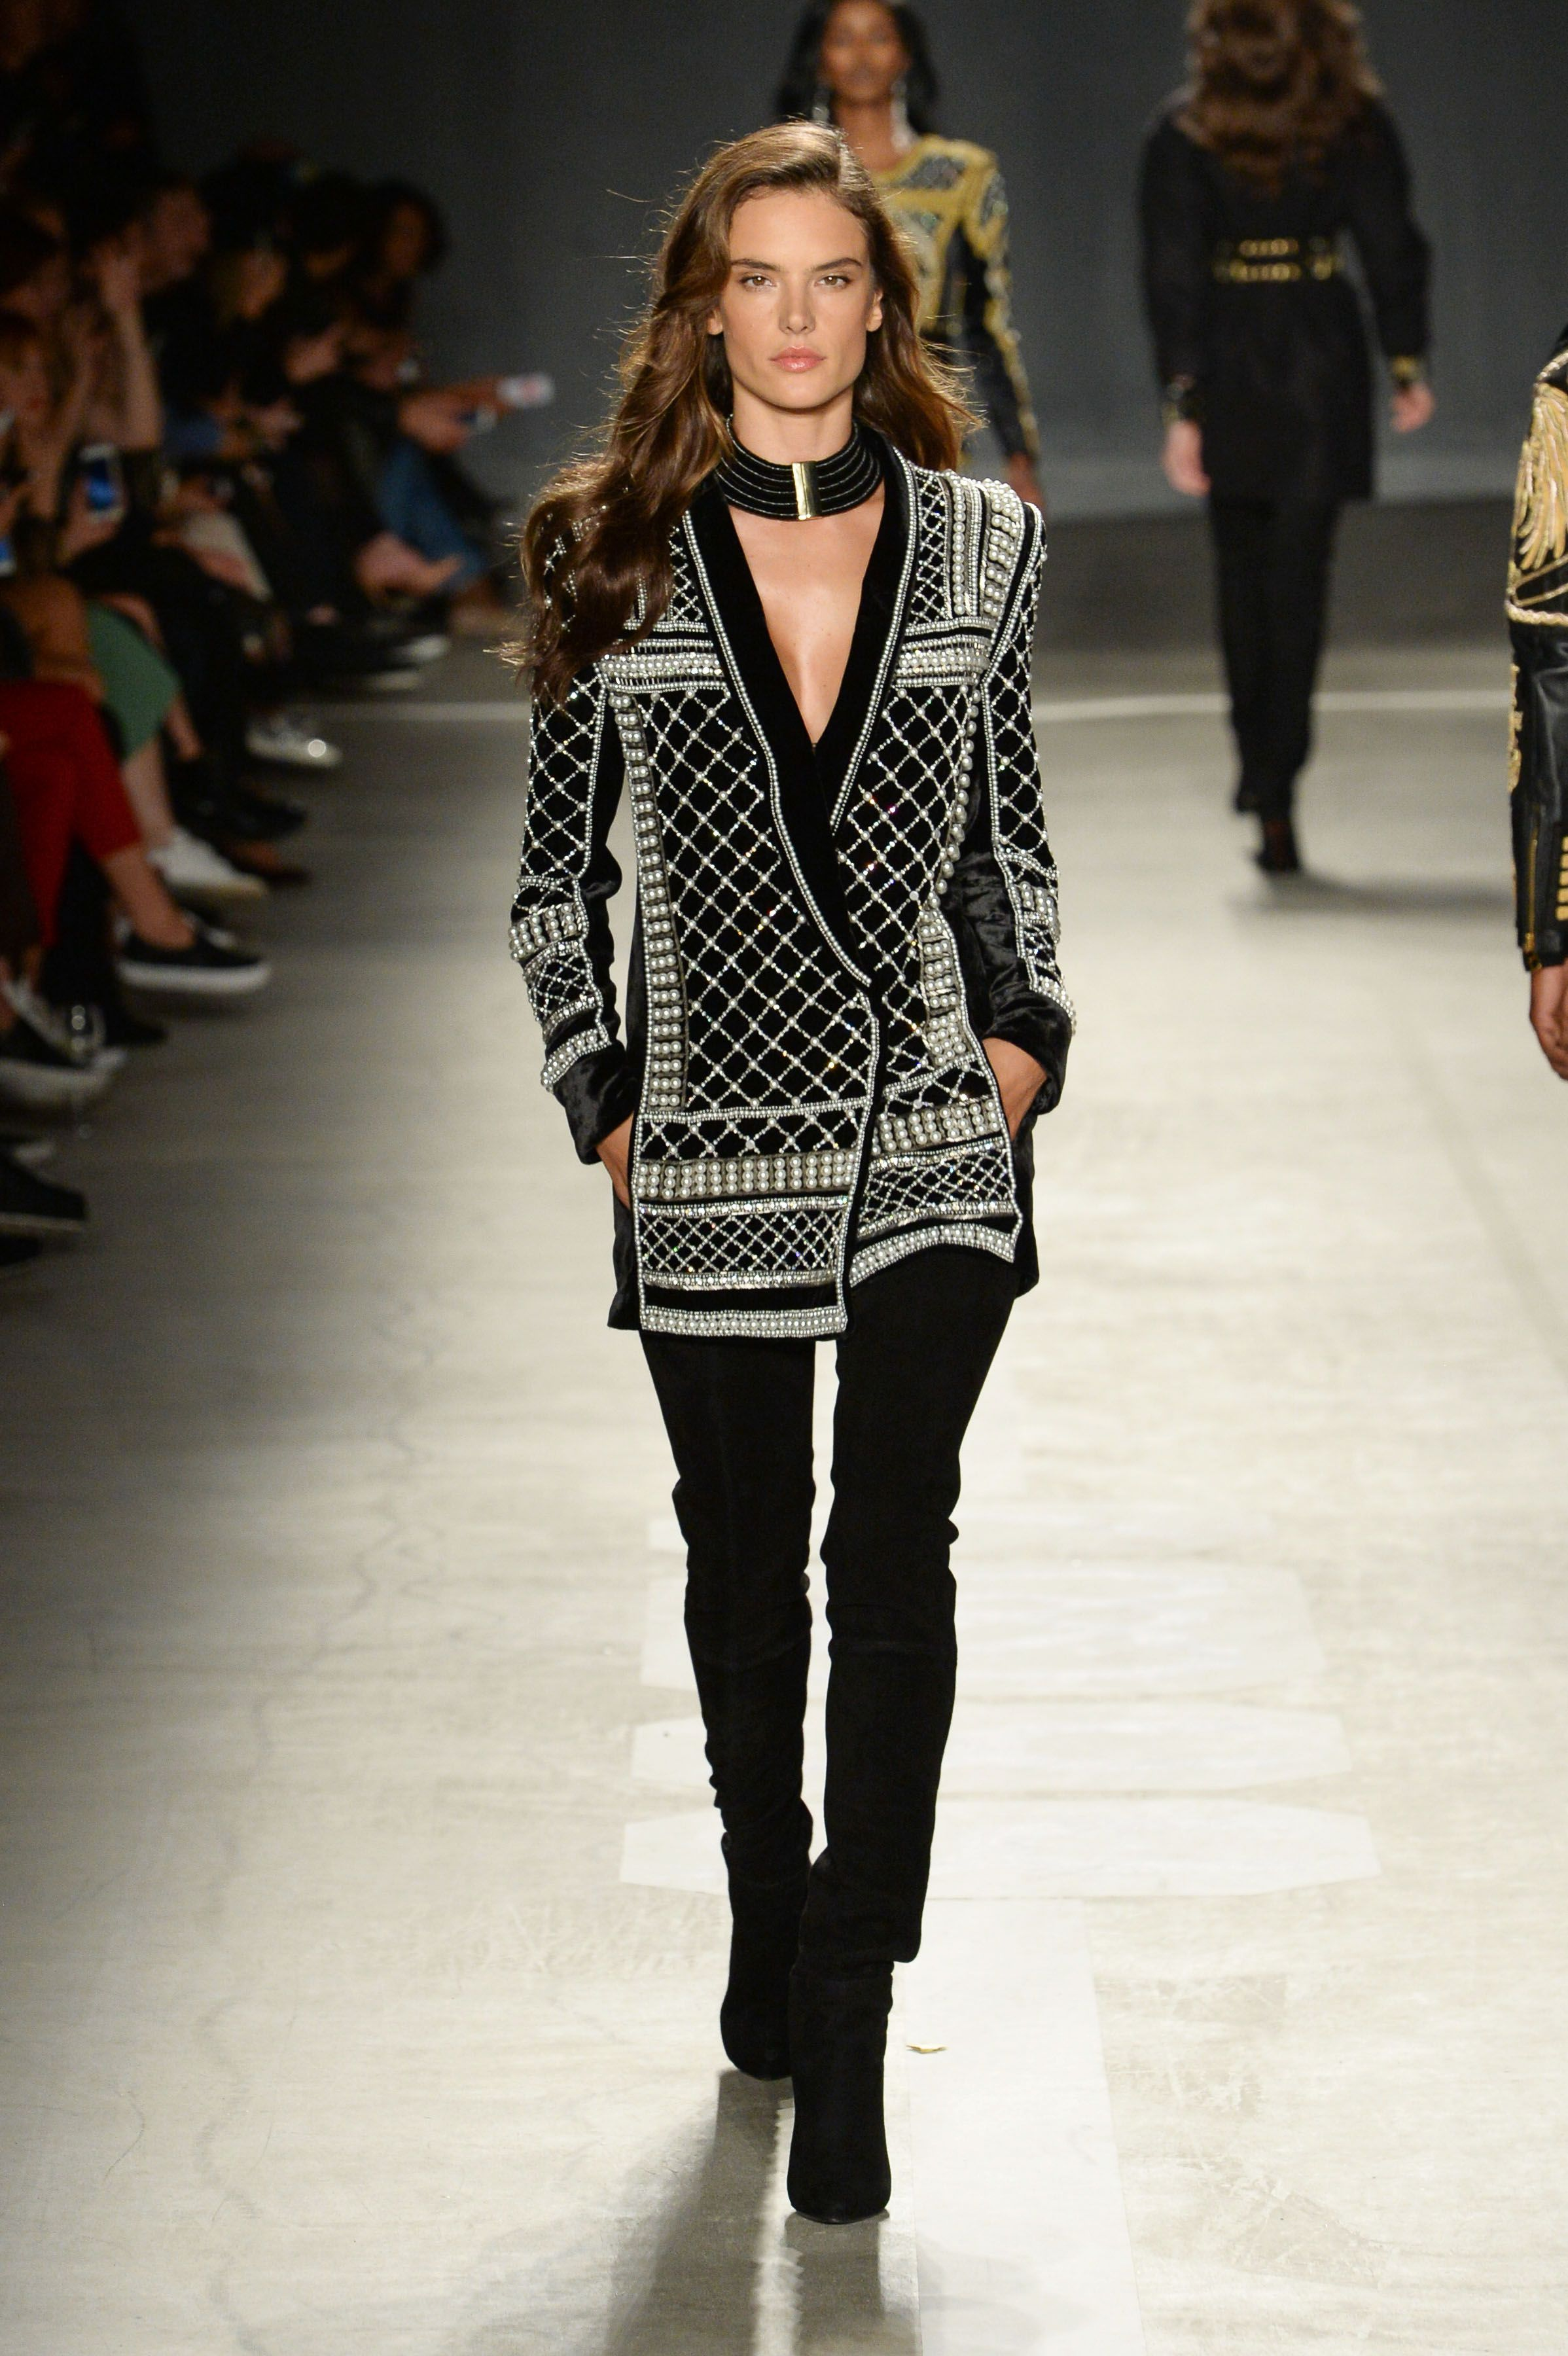 b70014fe Supermodel Alessandra Ambrosio dazzles the front row in a pearl embellished  blazer from the Balmain x H&M collection, available Nov. 5th.